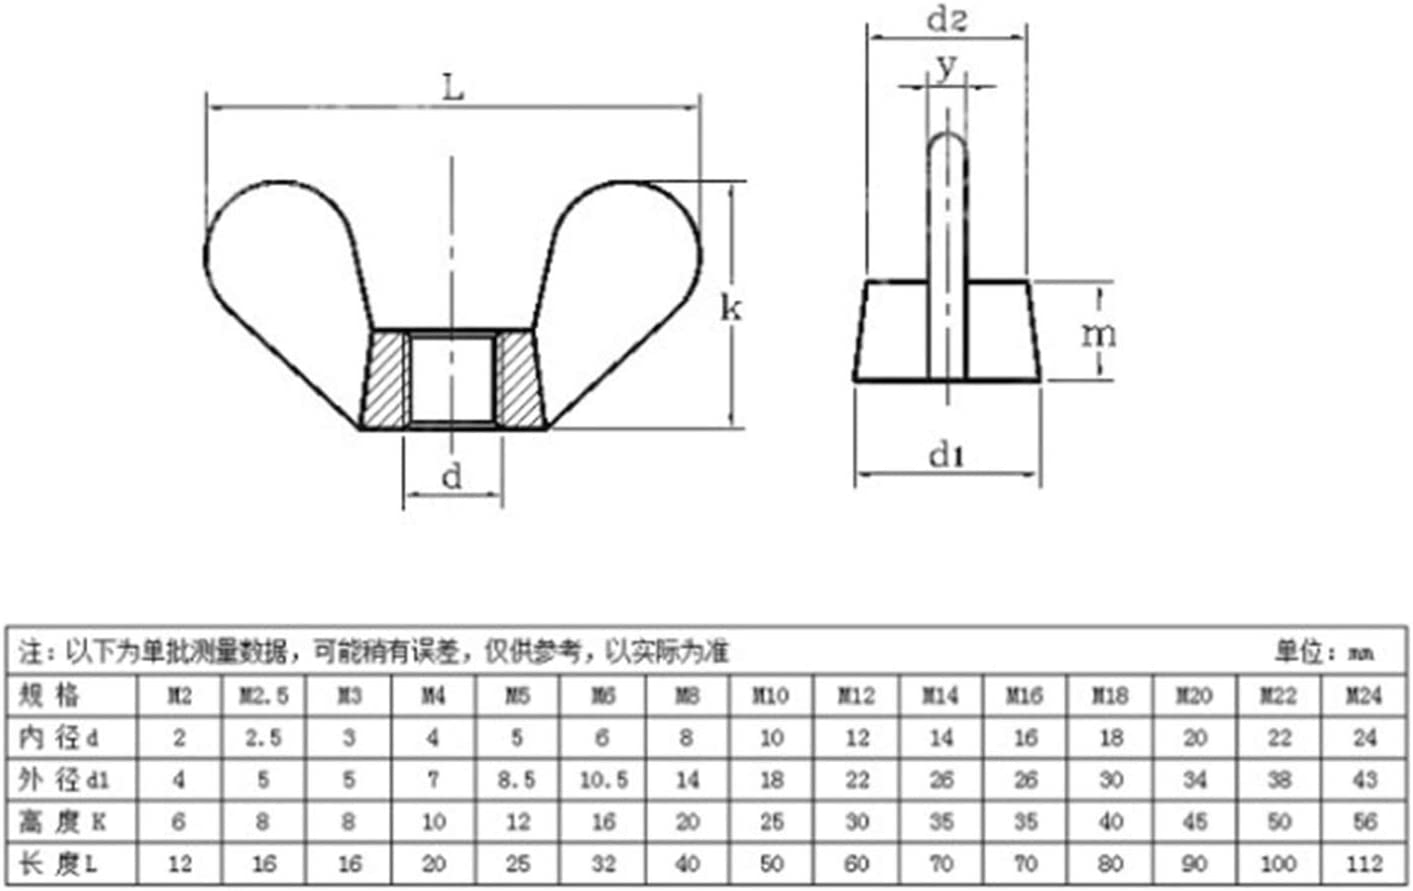 DINGGUANGHE-CUP Hex Nuts 50 Pieces 304 Stainless Steel Wing Nuts Butterfly Nuts M4 Metic Threaded Machine Screw Nuts